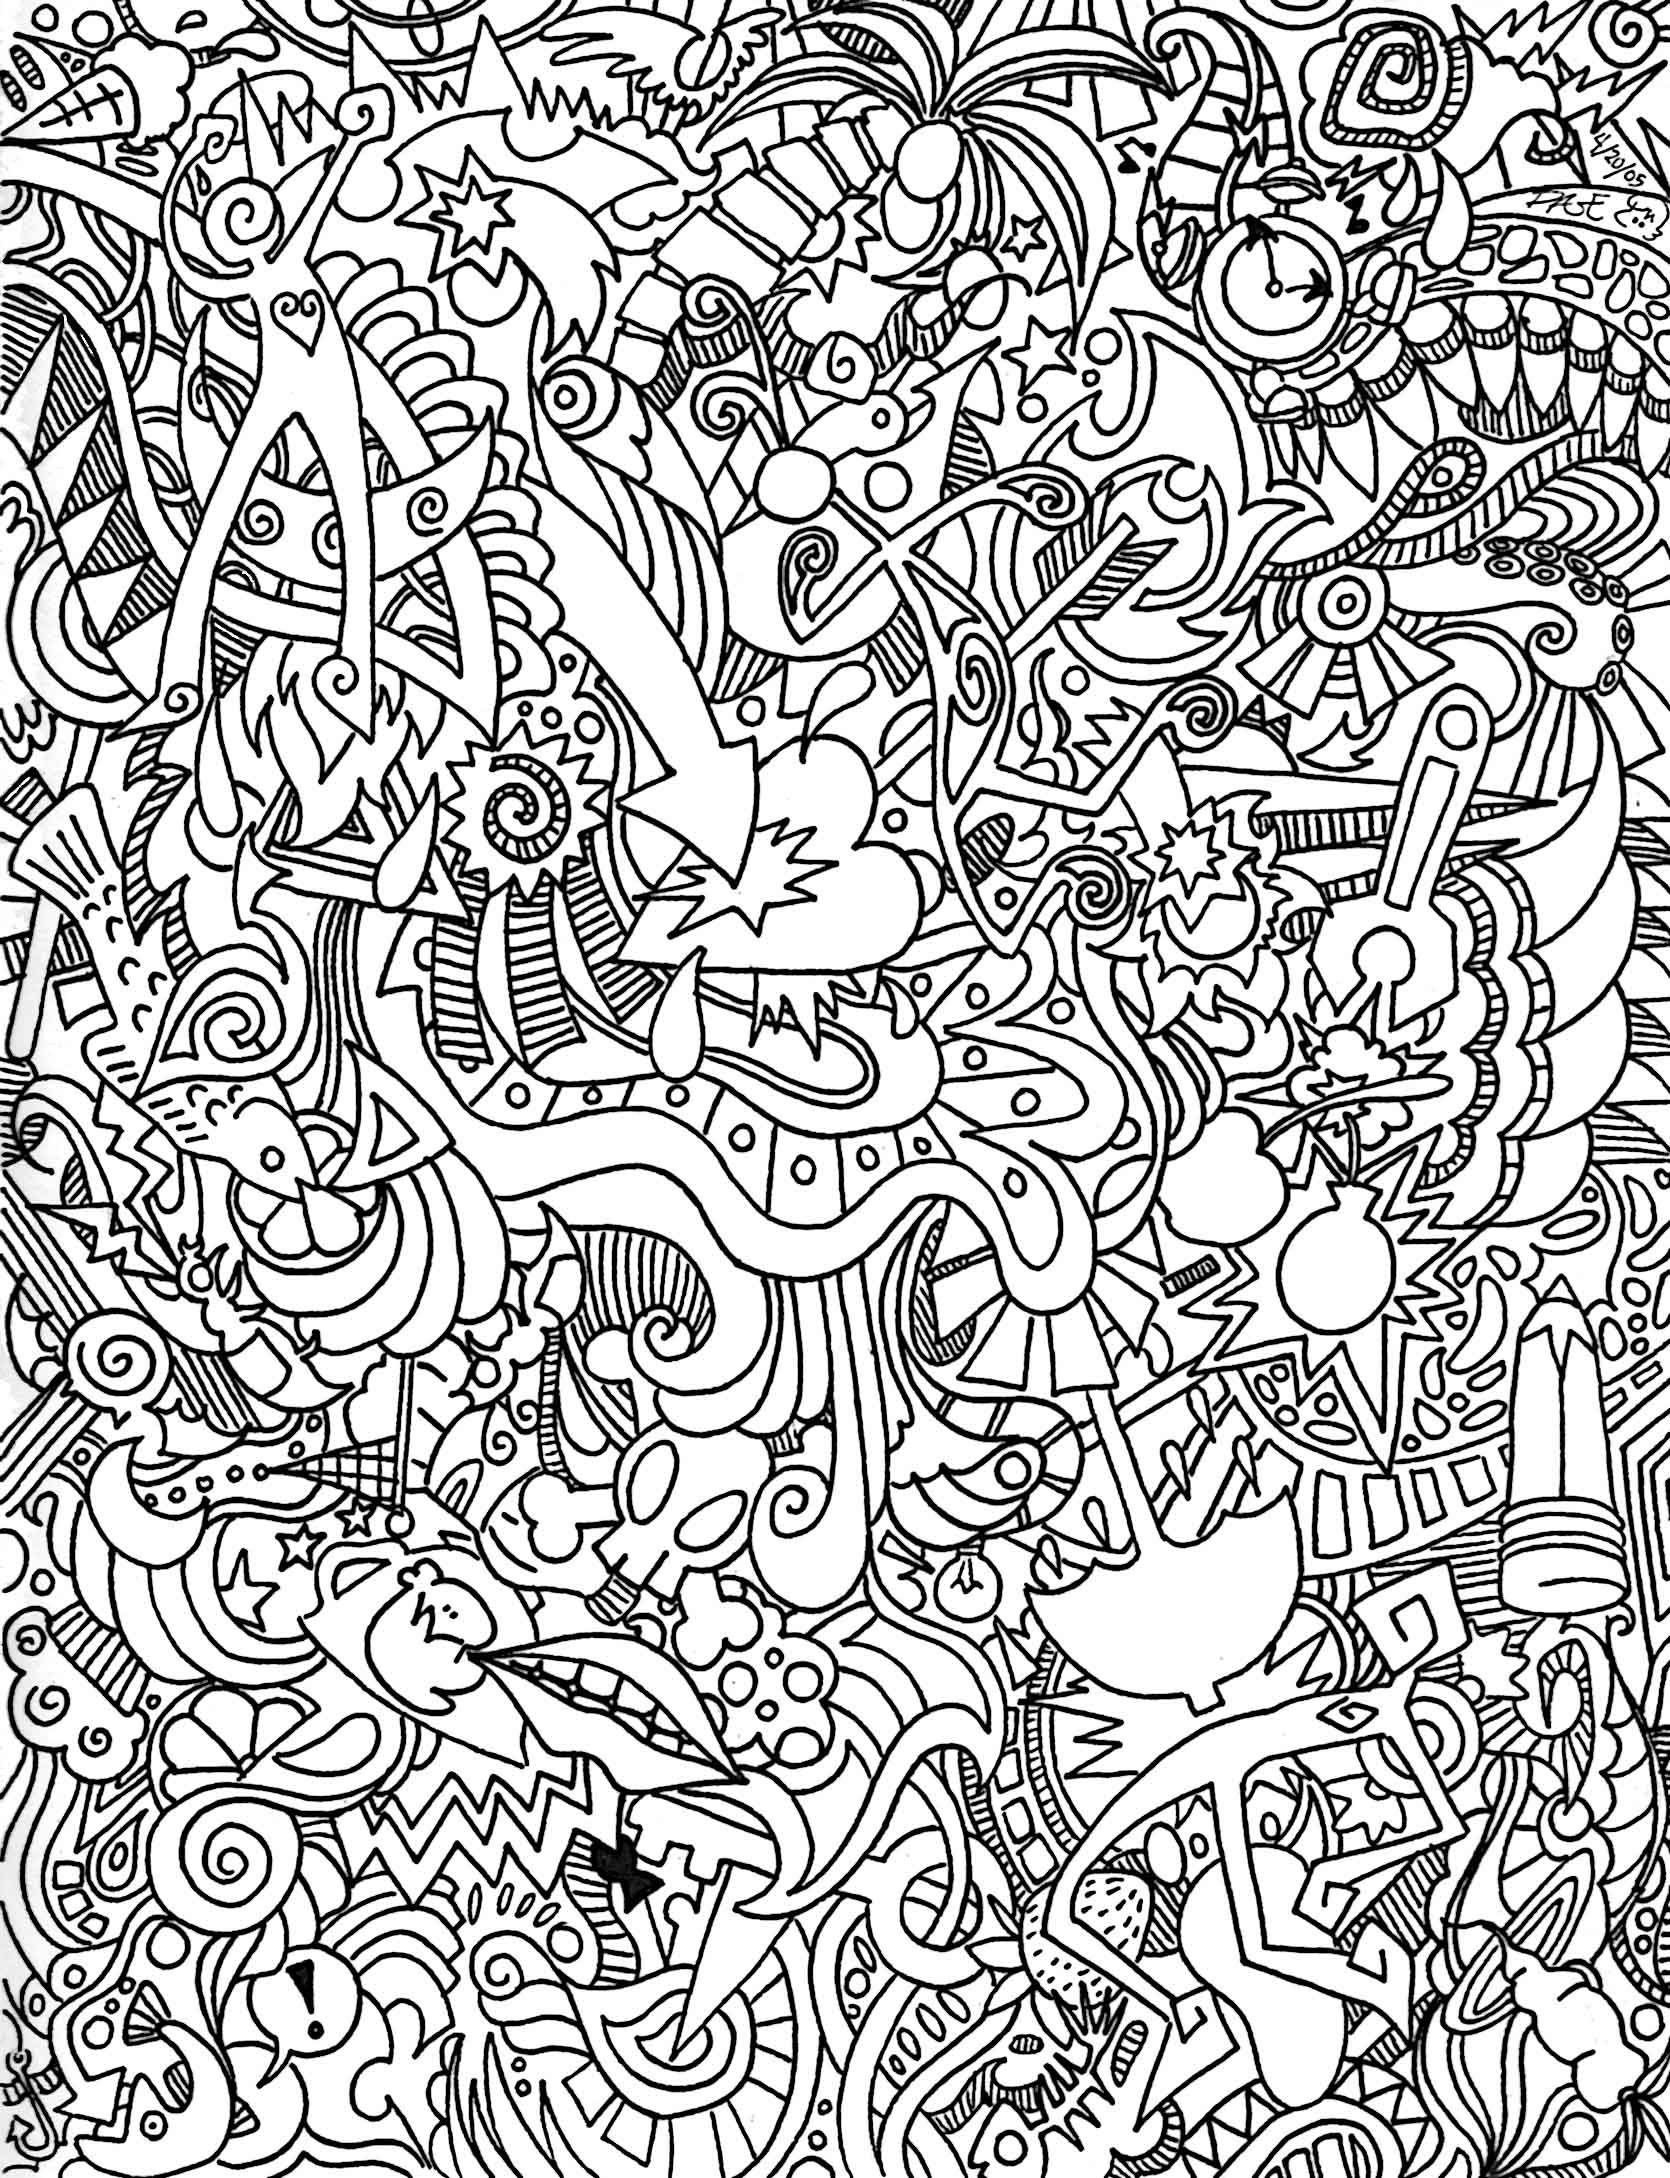 trippy coloring pages printable loudlyeccentric 35 psychedelic coloring pages print printable trippy pages coloring